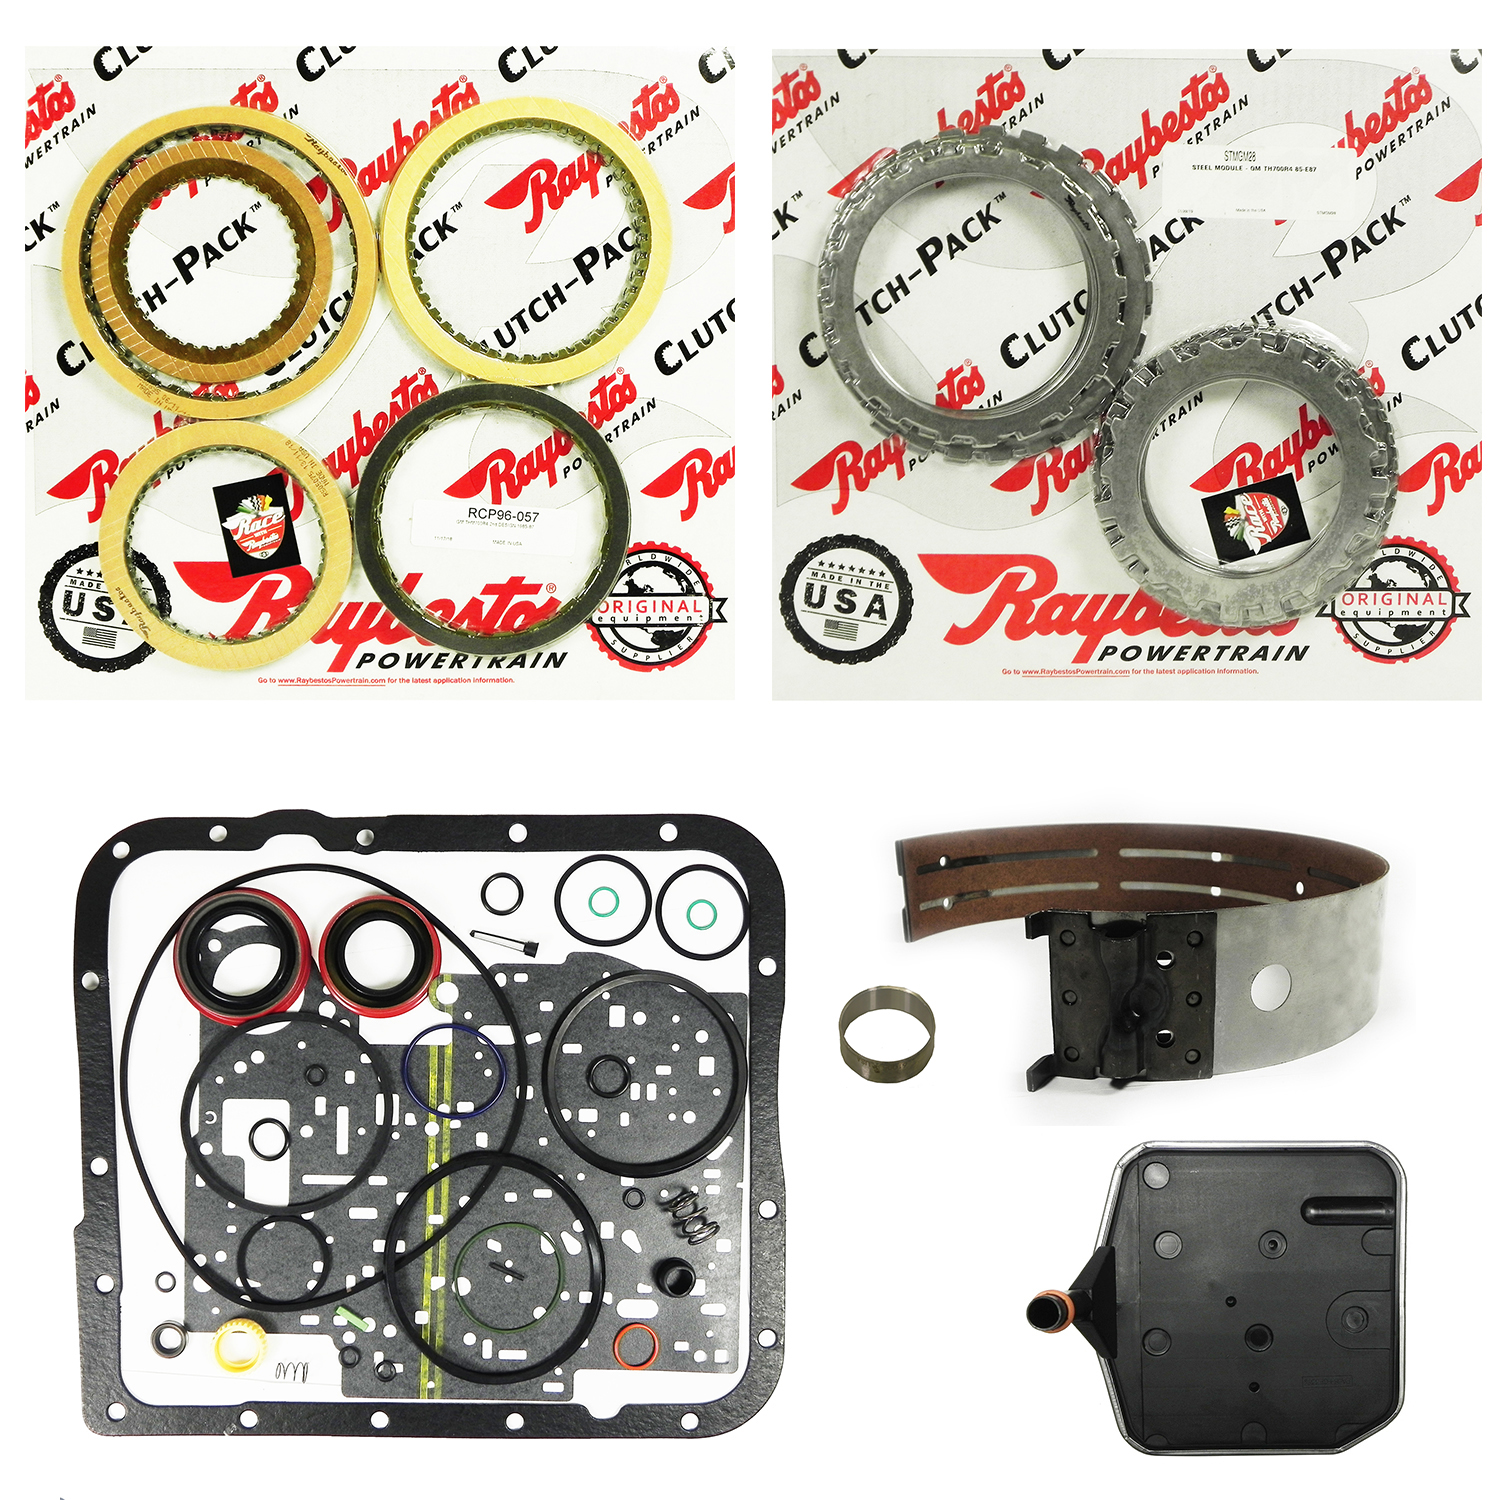 700R4 Super Rebuild Kit